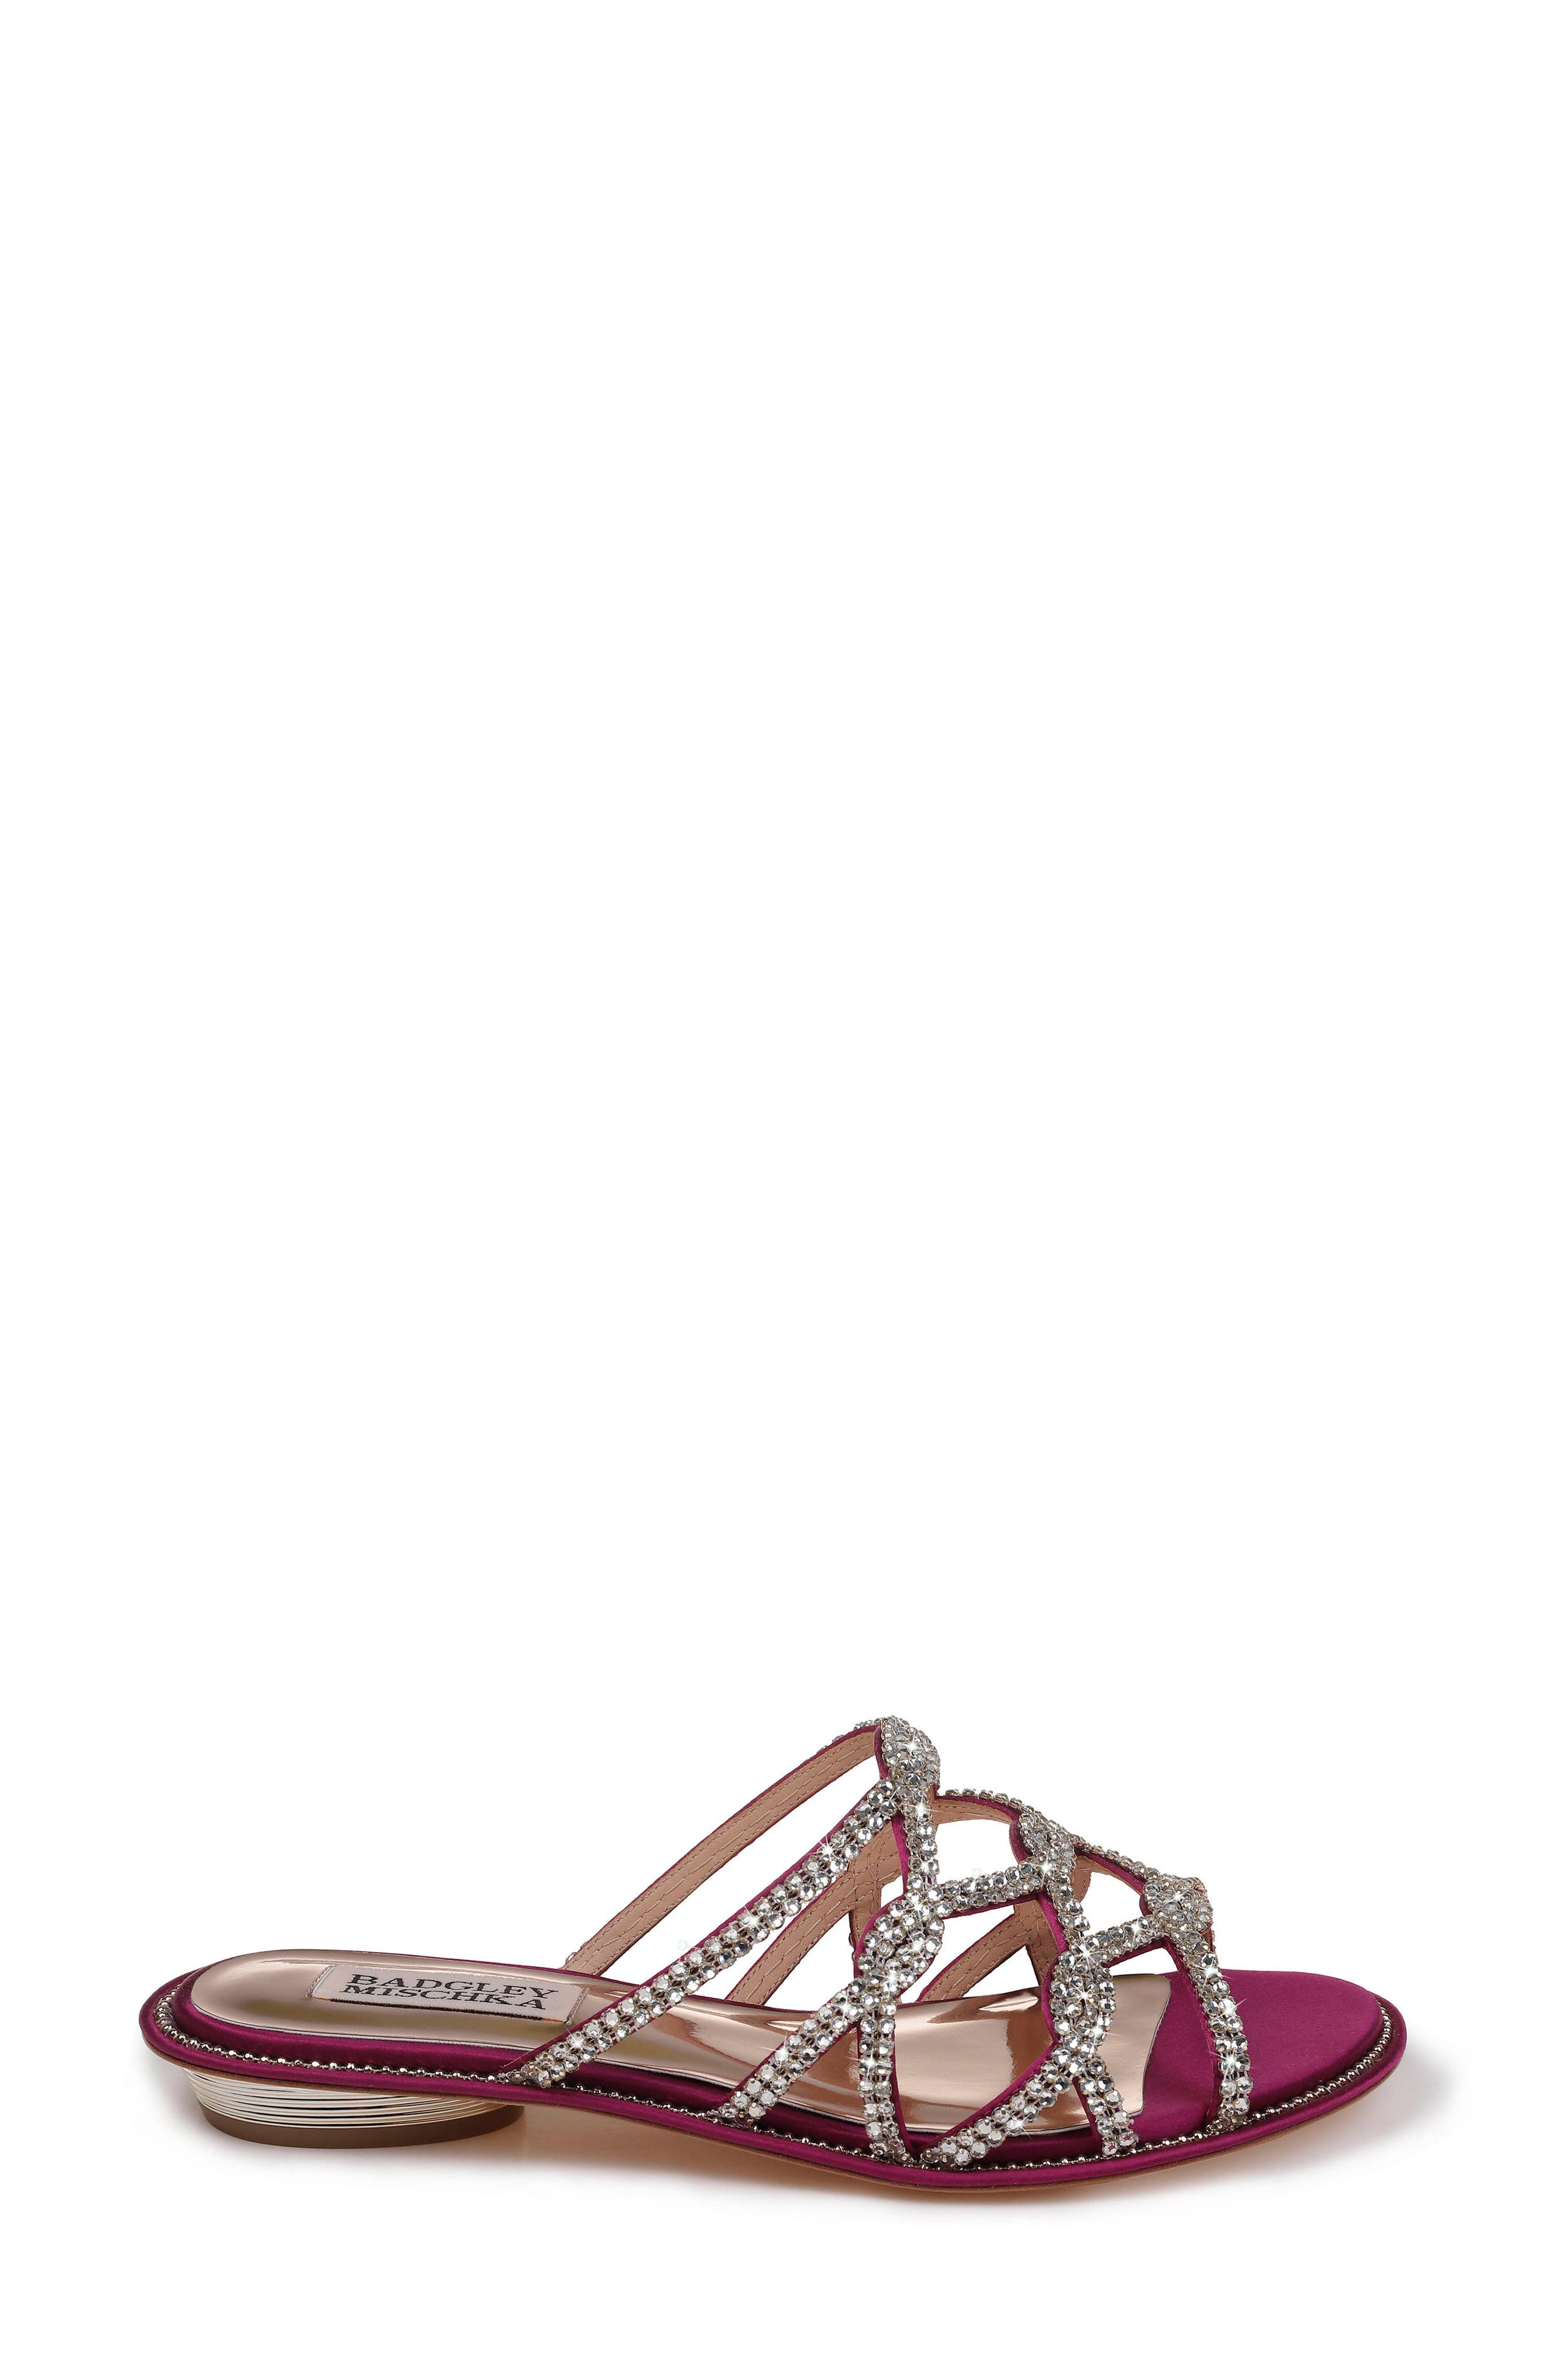 Sofie Strappy Sandal,                             Alternate thumbnail 3, color,                             Mulberry Satin